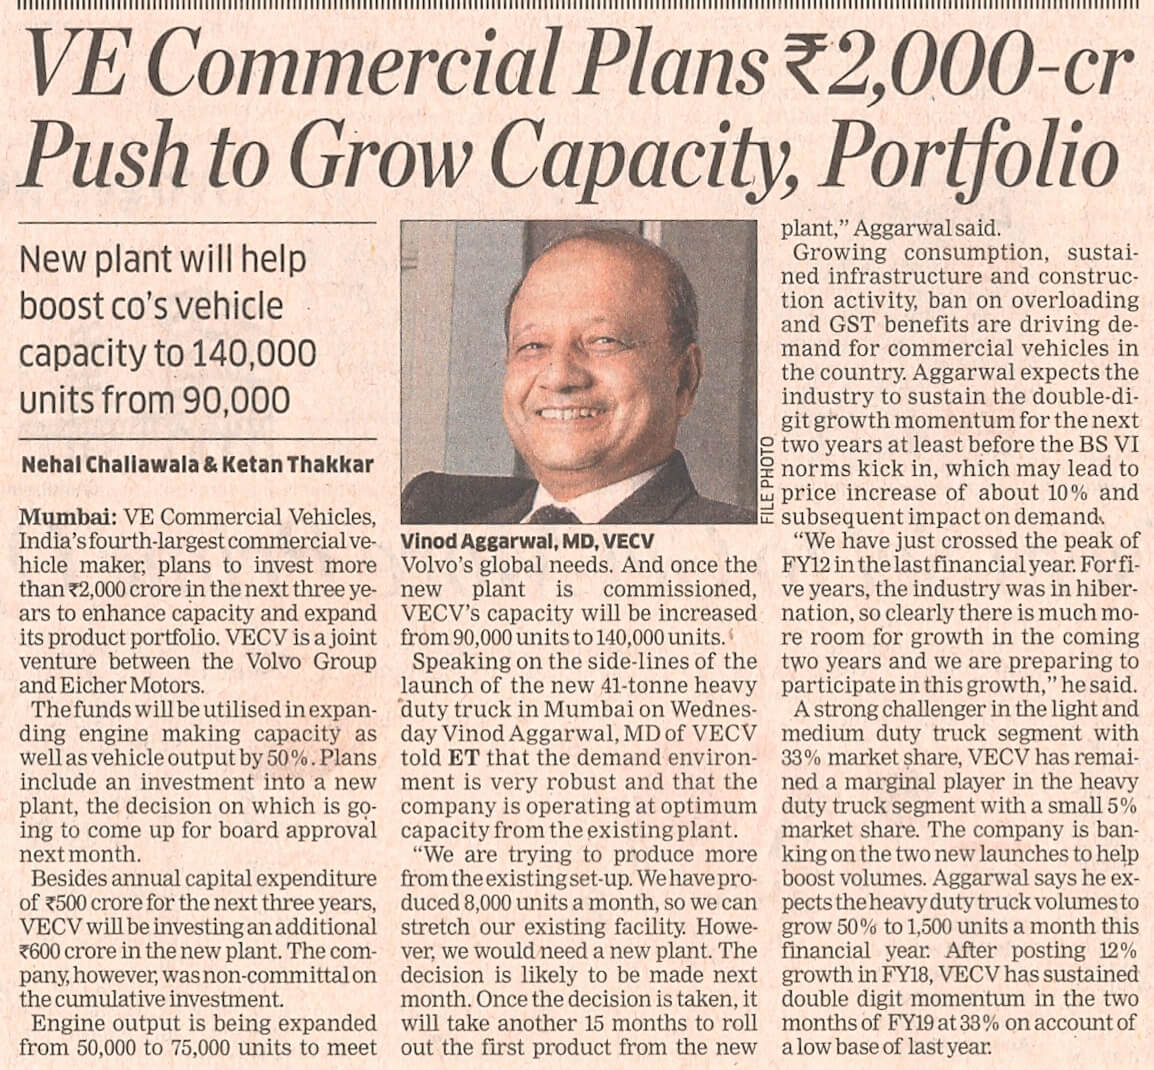 VE Commercial plans Rs. 2,000 cr push to grow capacity, portfolio